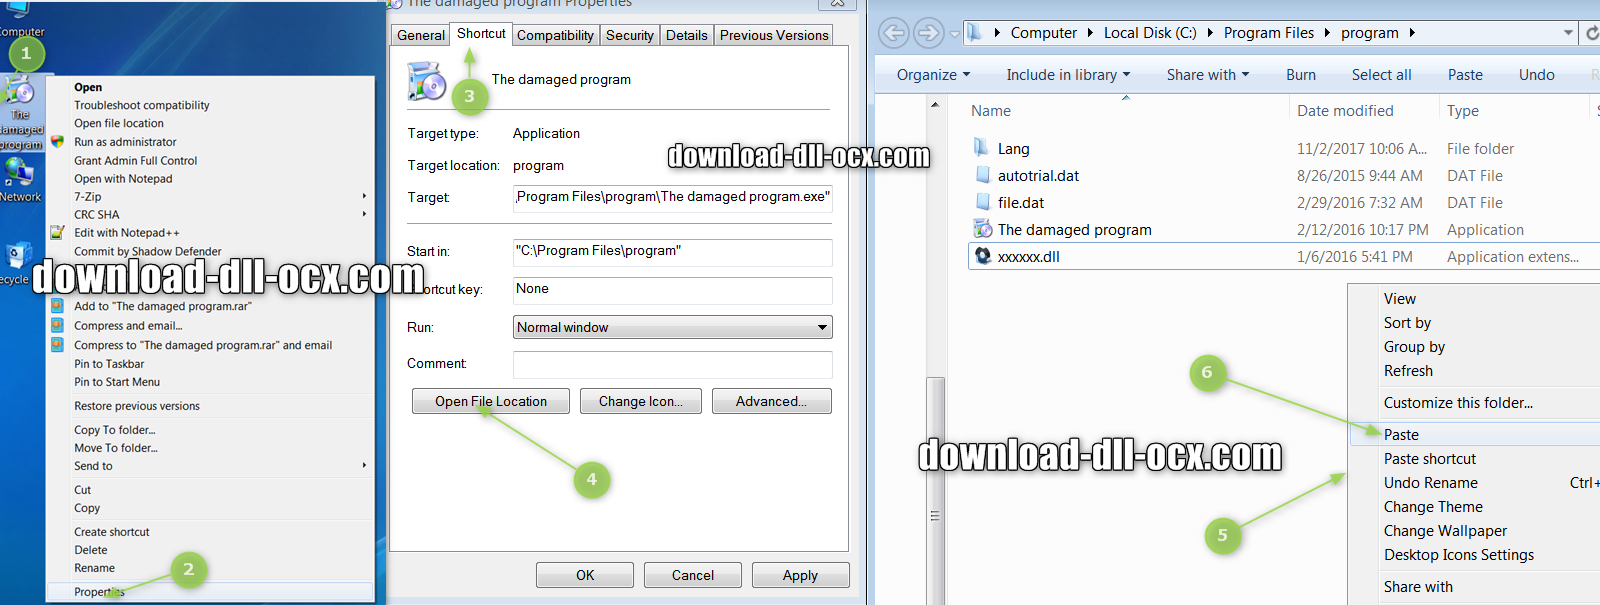 how to install Imeshare.dll file? for fix missing